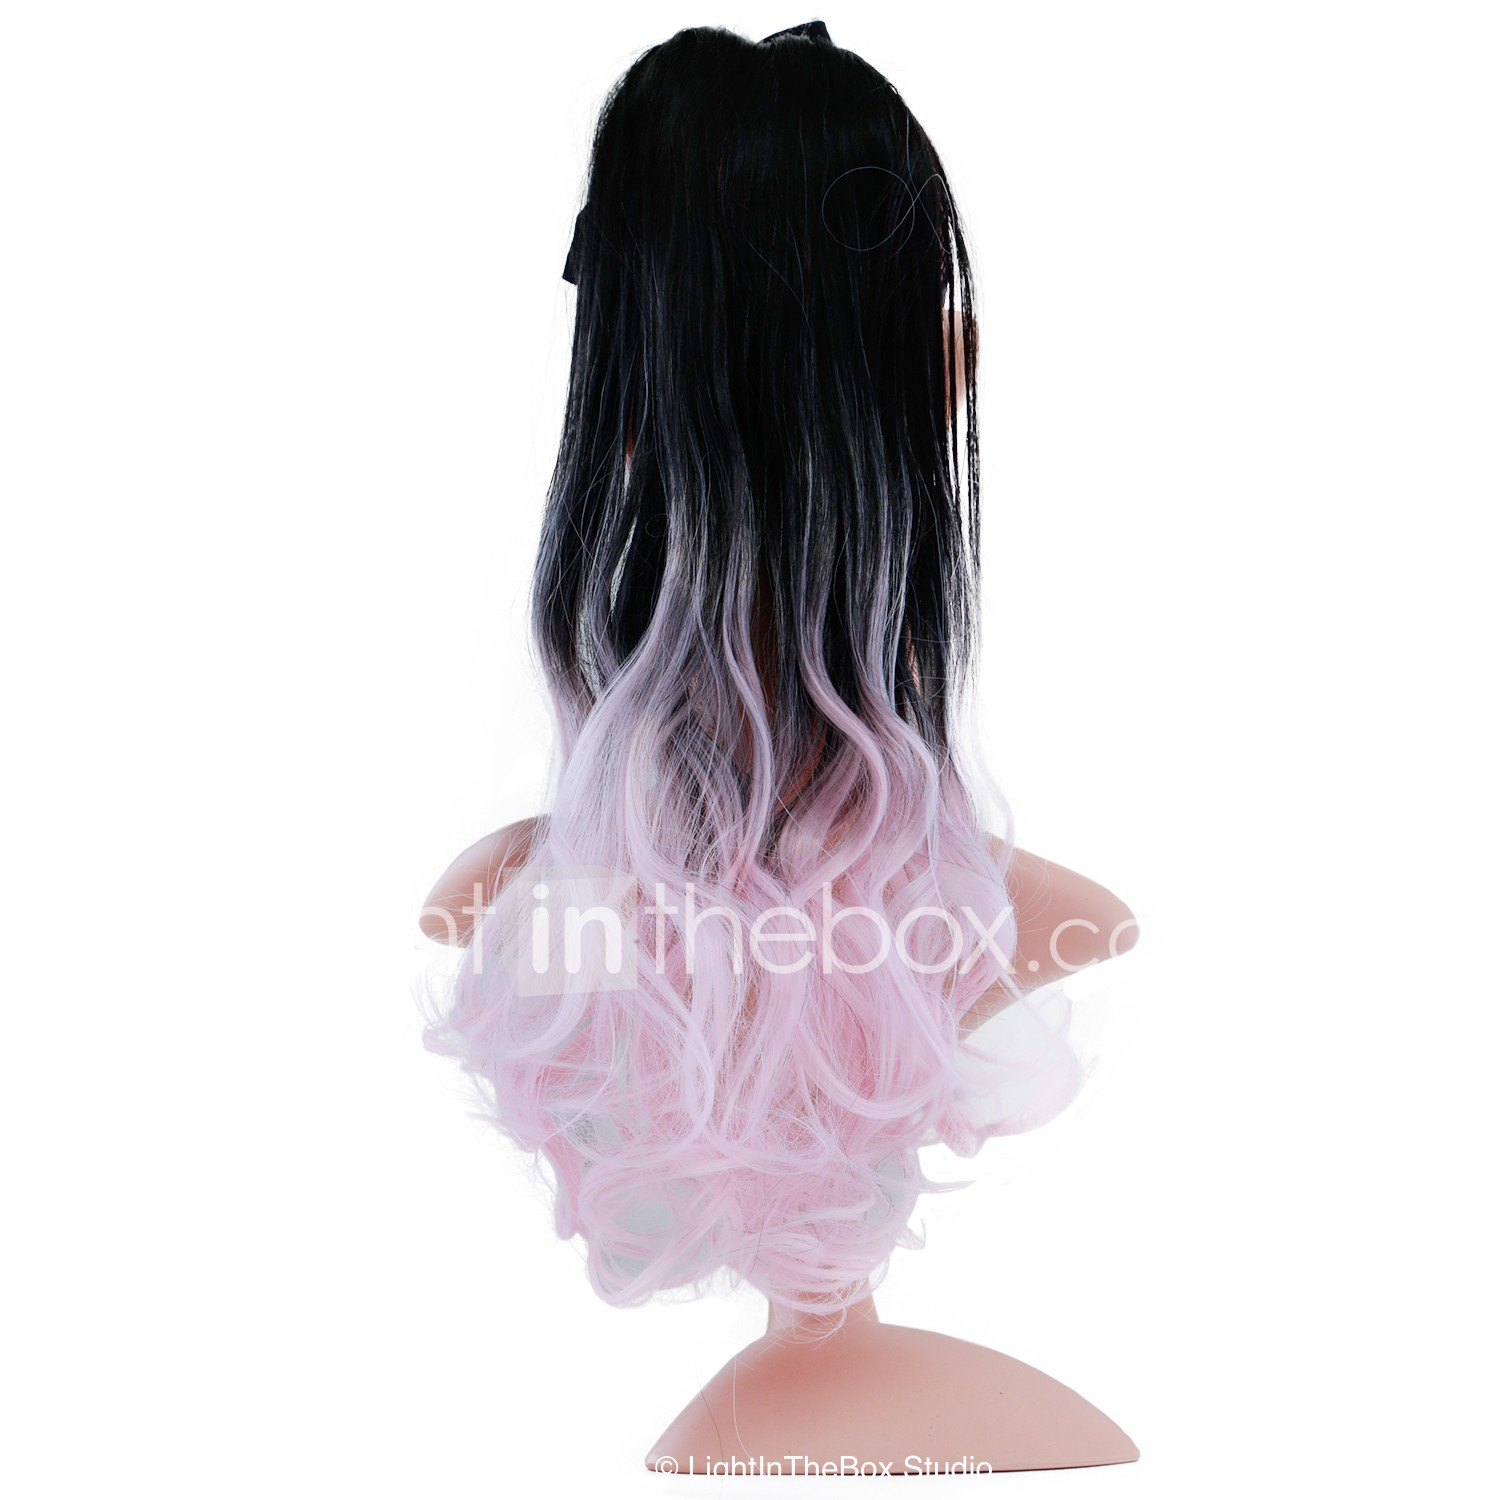 drawstring ponytails tie up synthetic hair hair piece hair extension